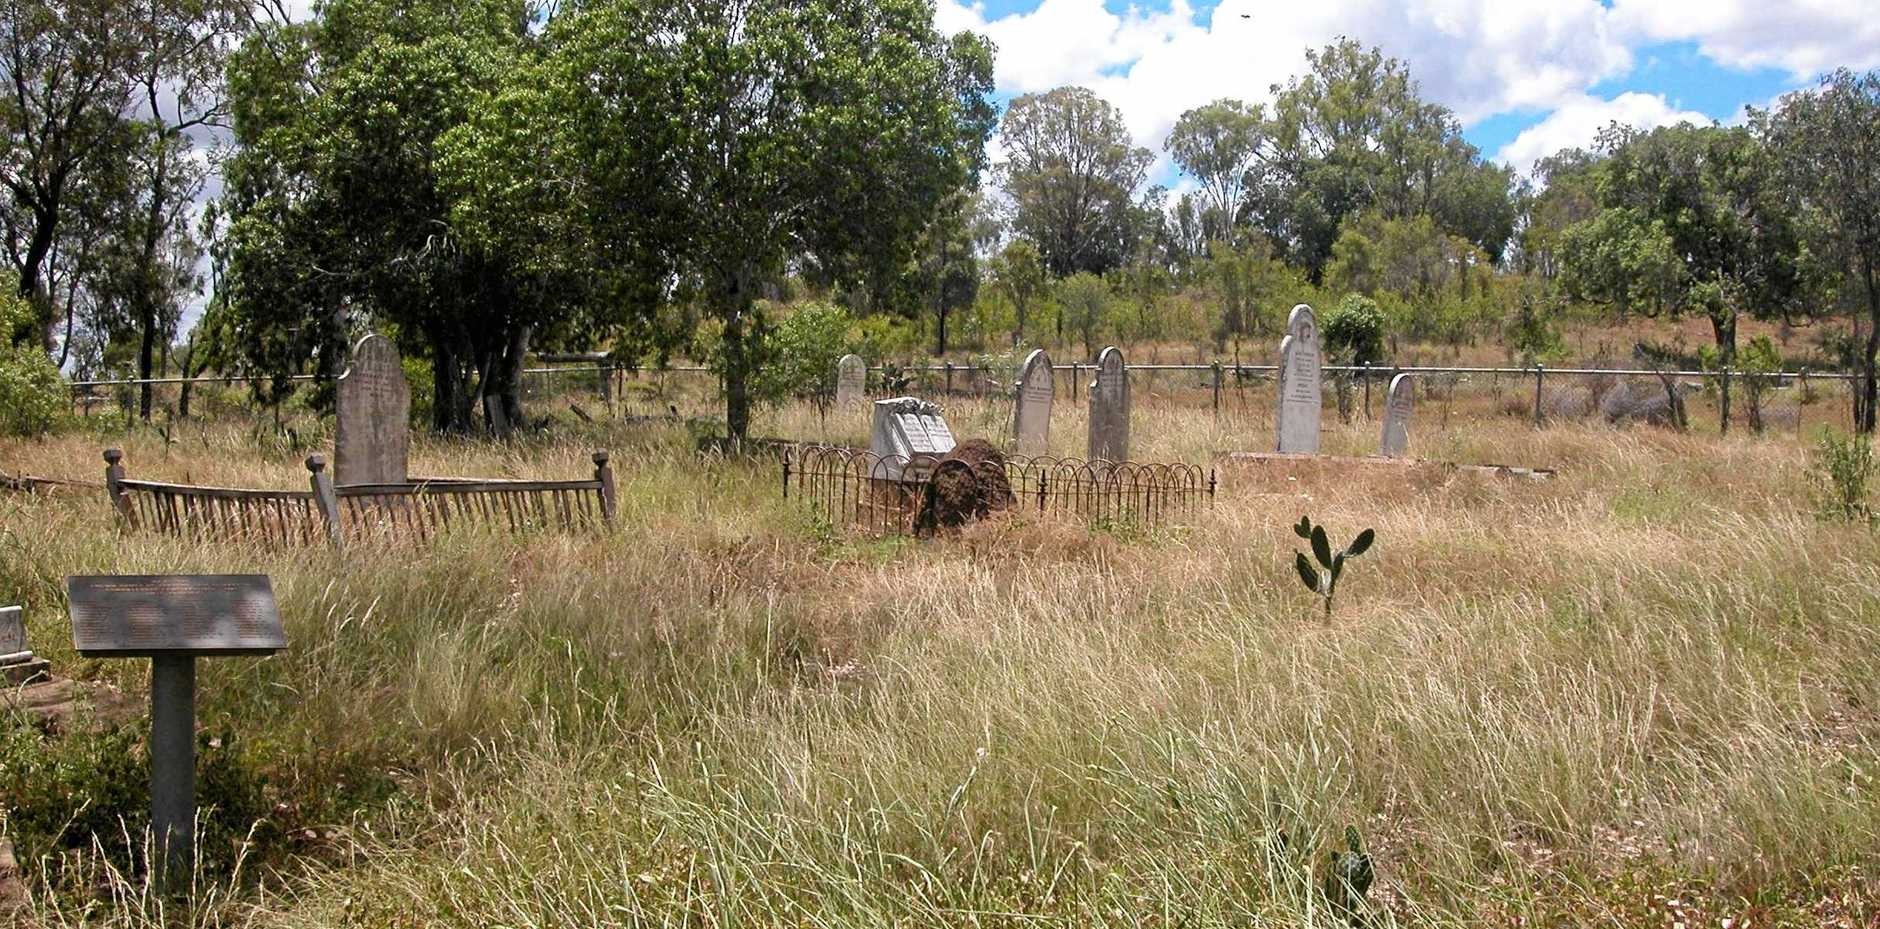 The Cumkillenbar Cemetery is difficult to find. It was located behind a hill from the old station homestead. On the left is a plaque with names of many buried there.